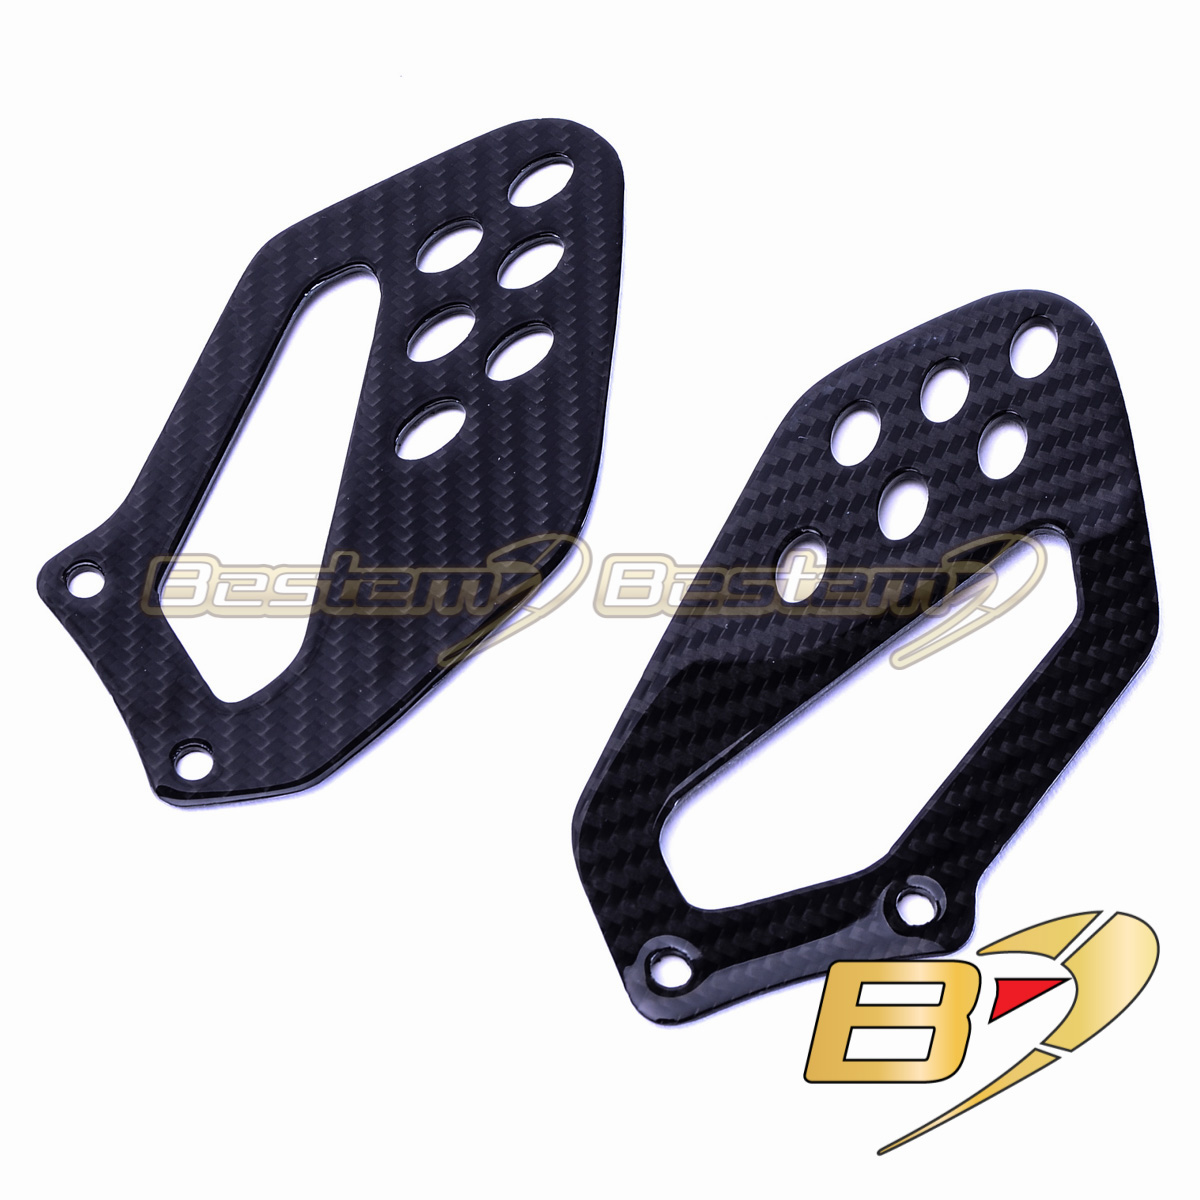 Bmw S1000rr Hp4 2009 2018 100 Carbon Fiber Heel Guards 12 14 Oem Style Twill Weave